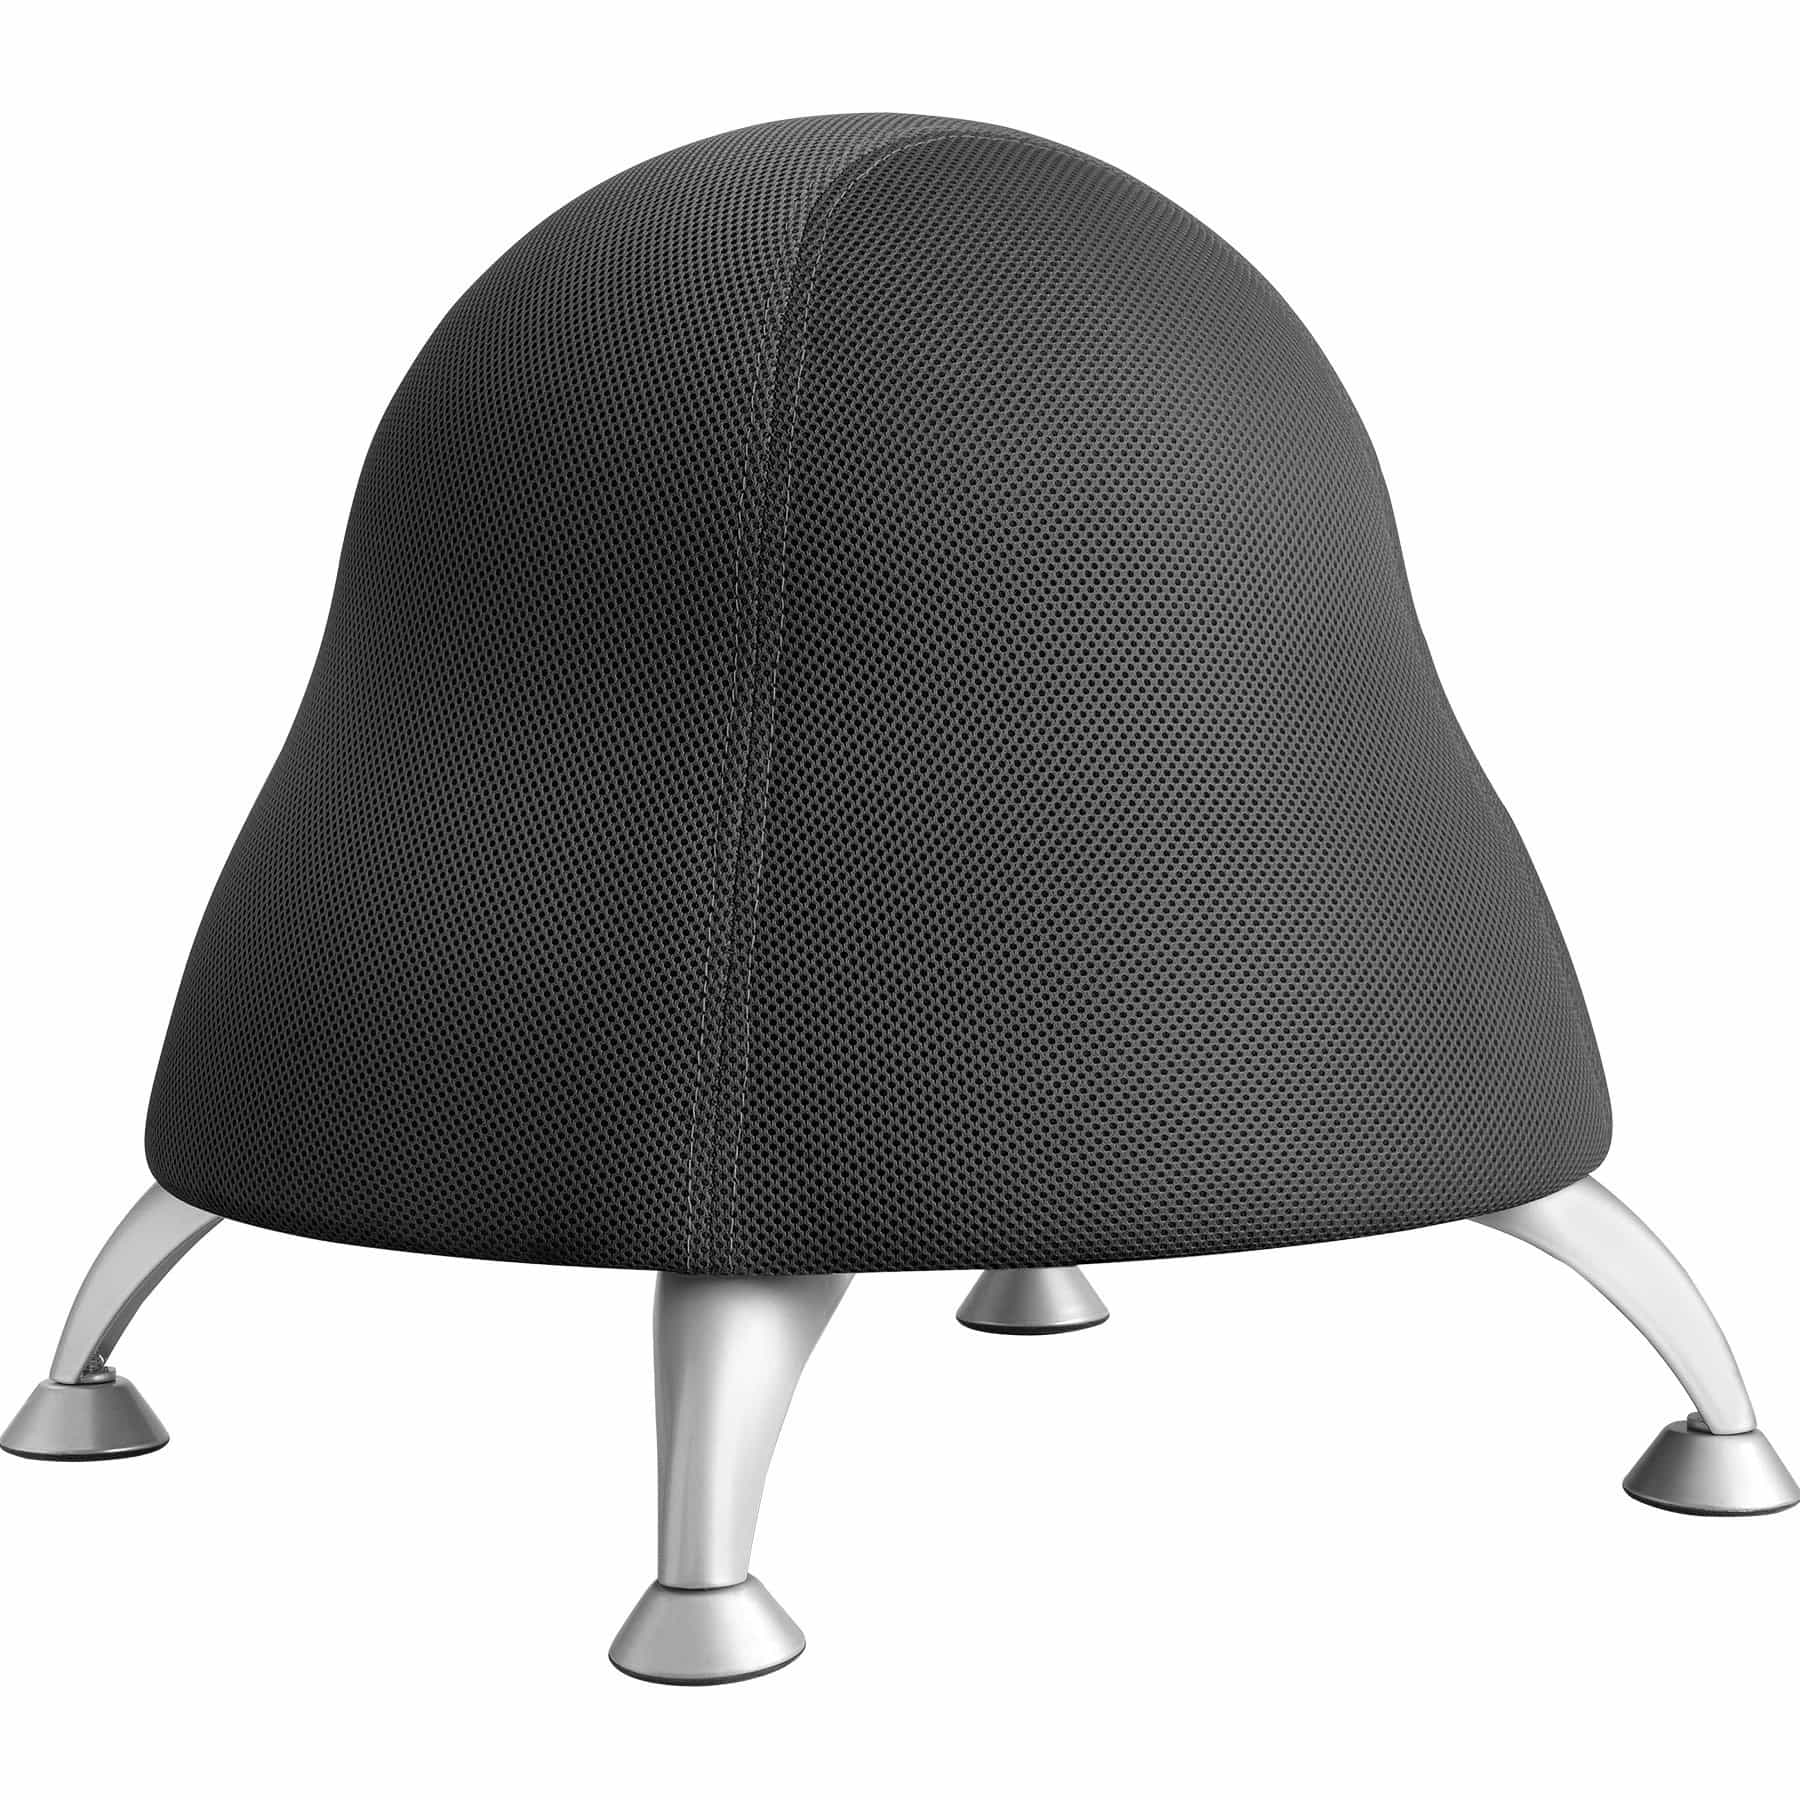 bedinhome - 4755BL Safco Home Furniture Runtz 4 powder coated legs & stationary glides Ball Chair - Safco - Specialty Seating